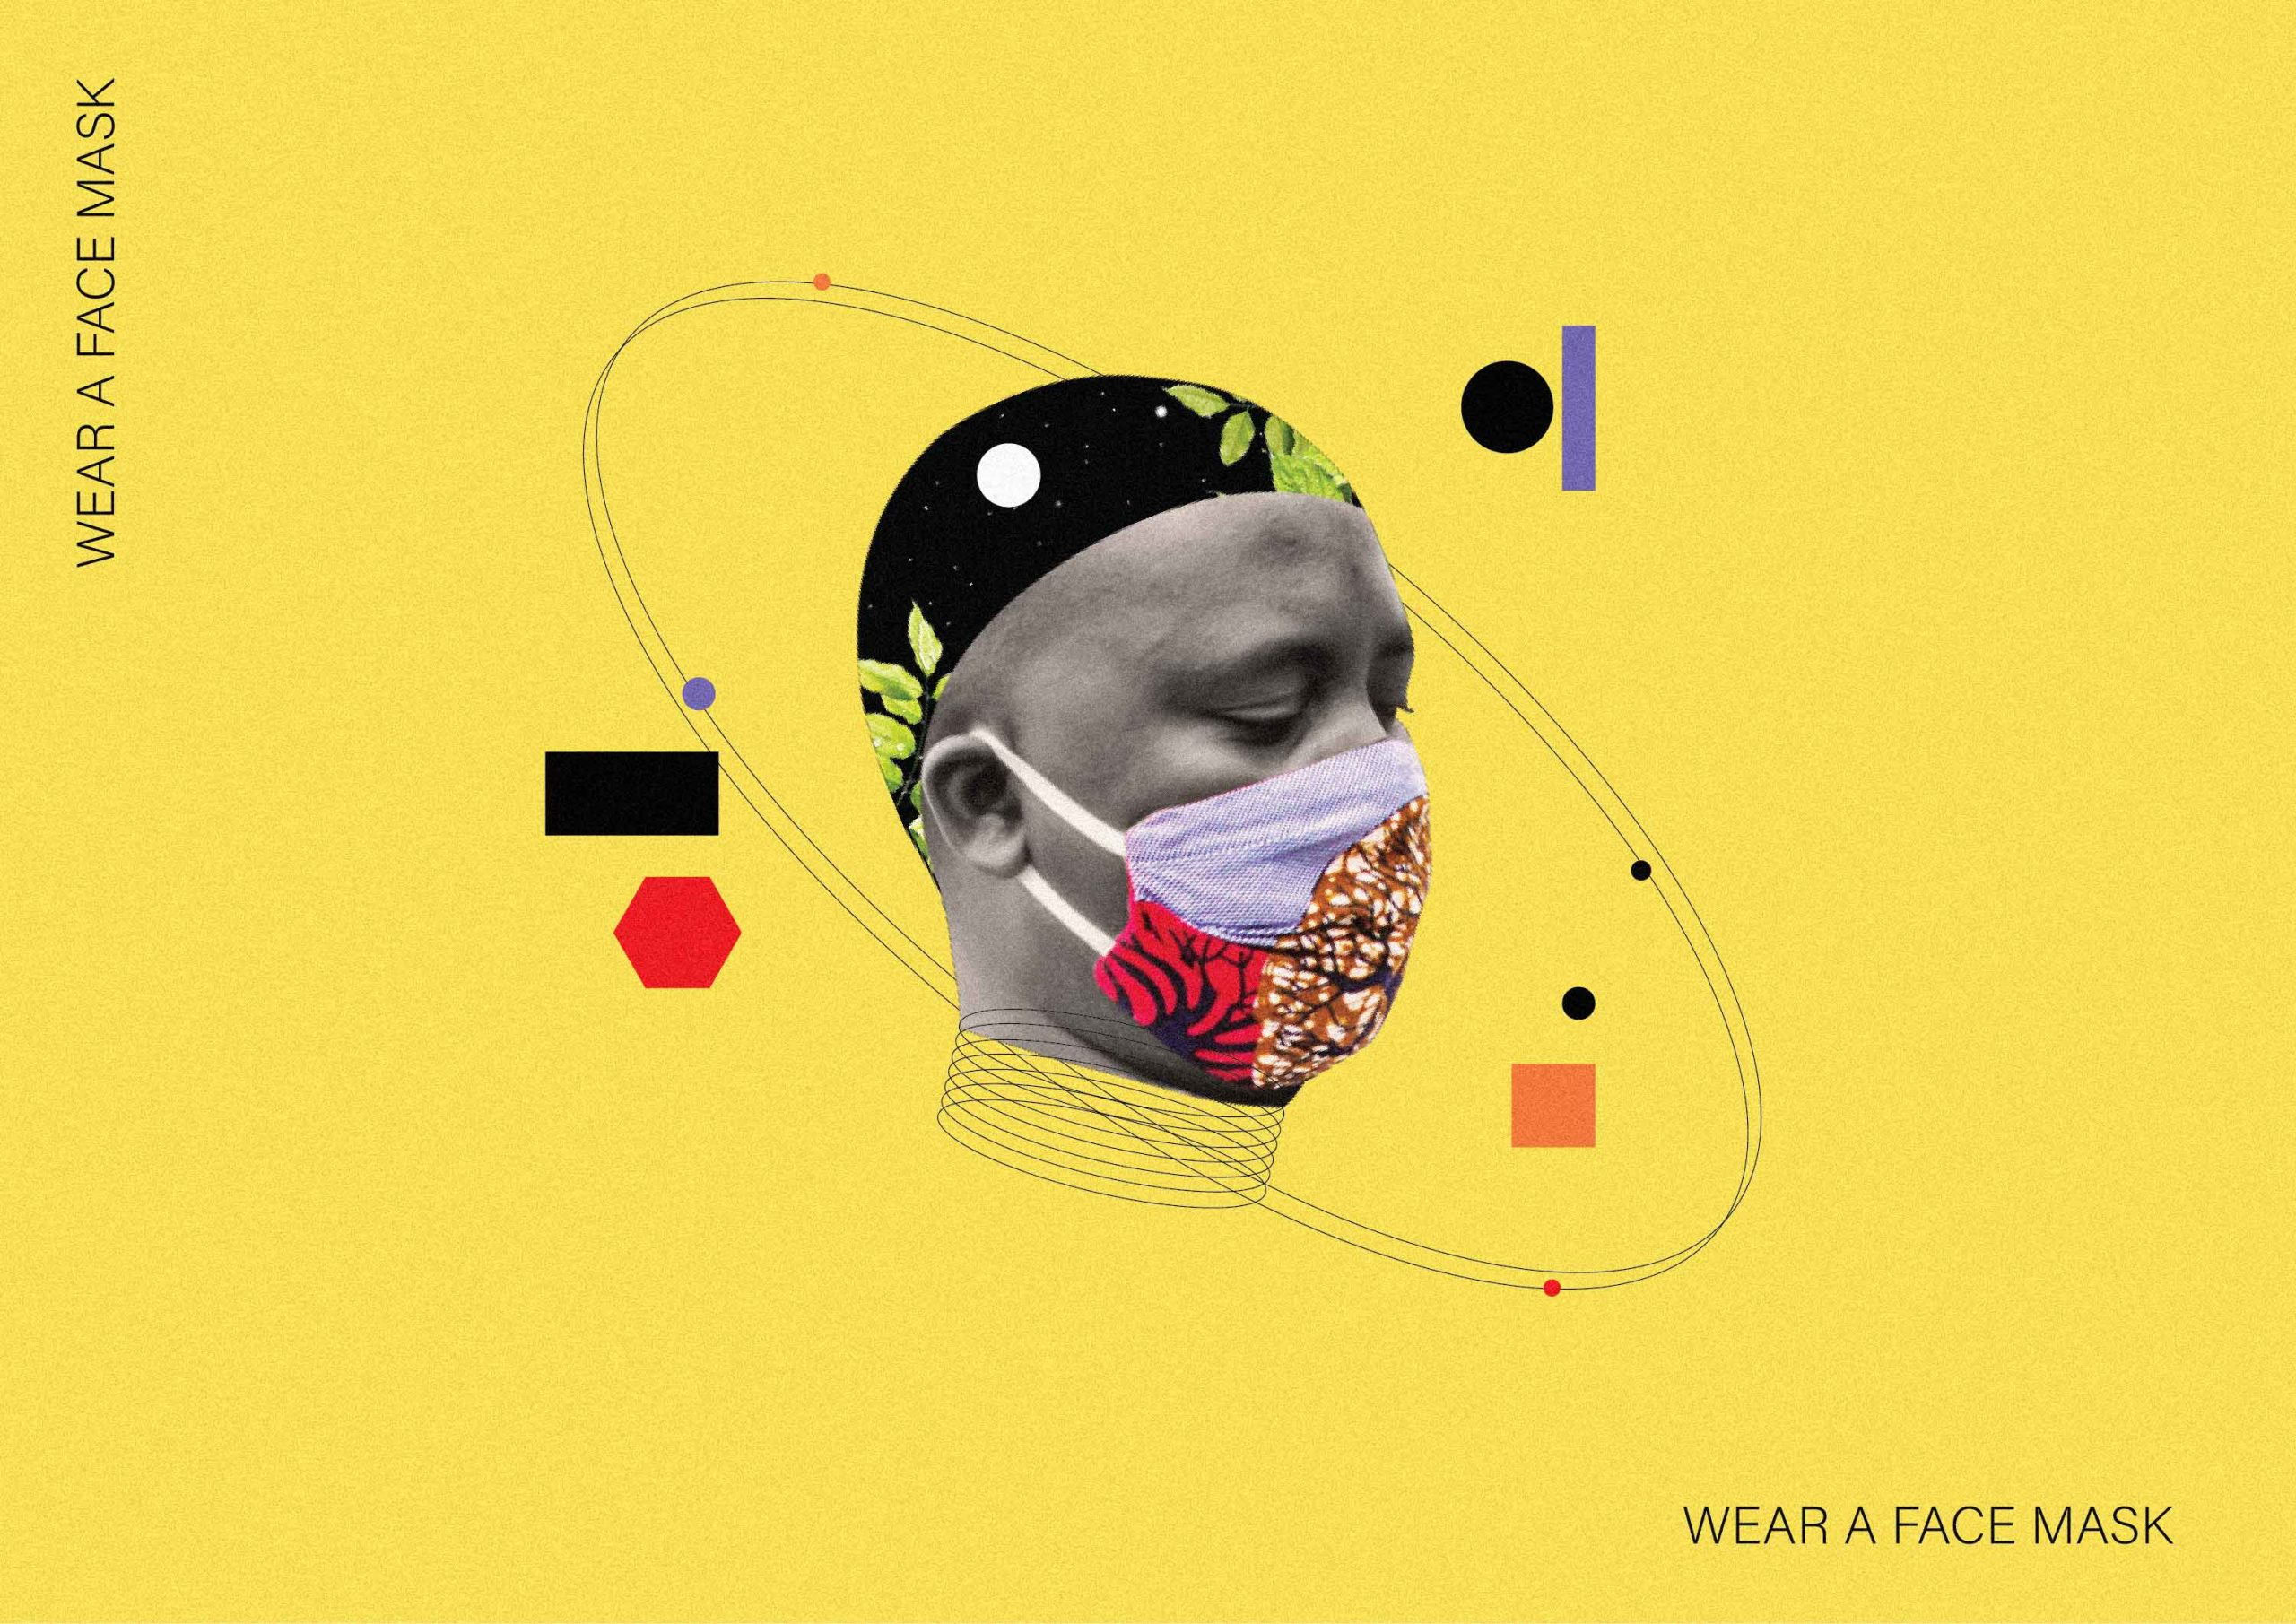 Wearing a Face mask reduces your risk of exposure to Covid-19 enormously